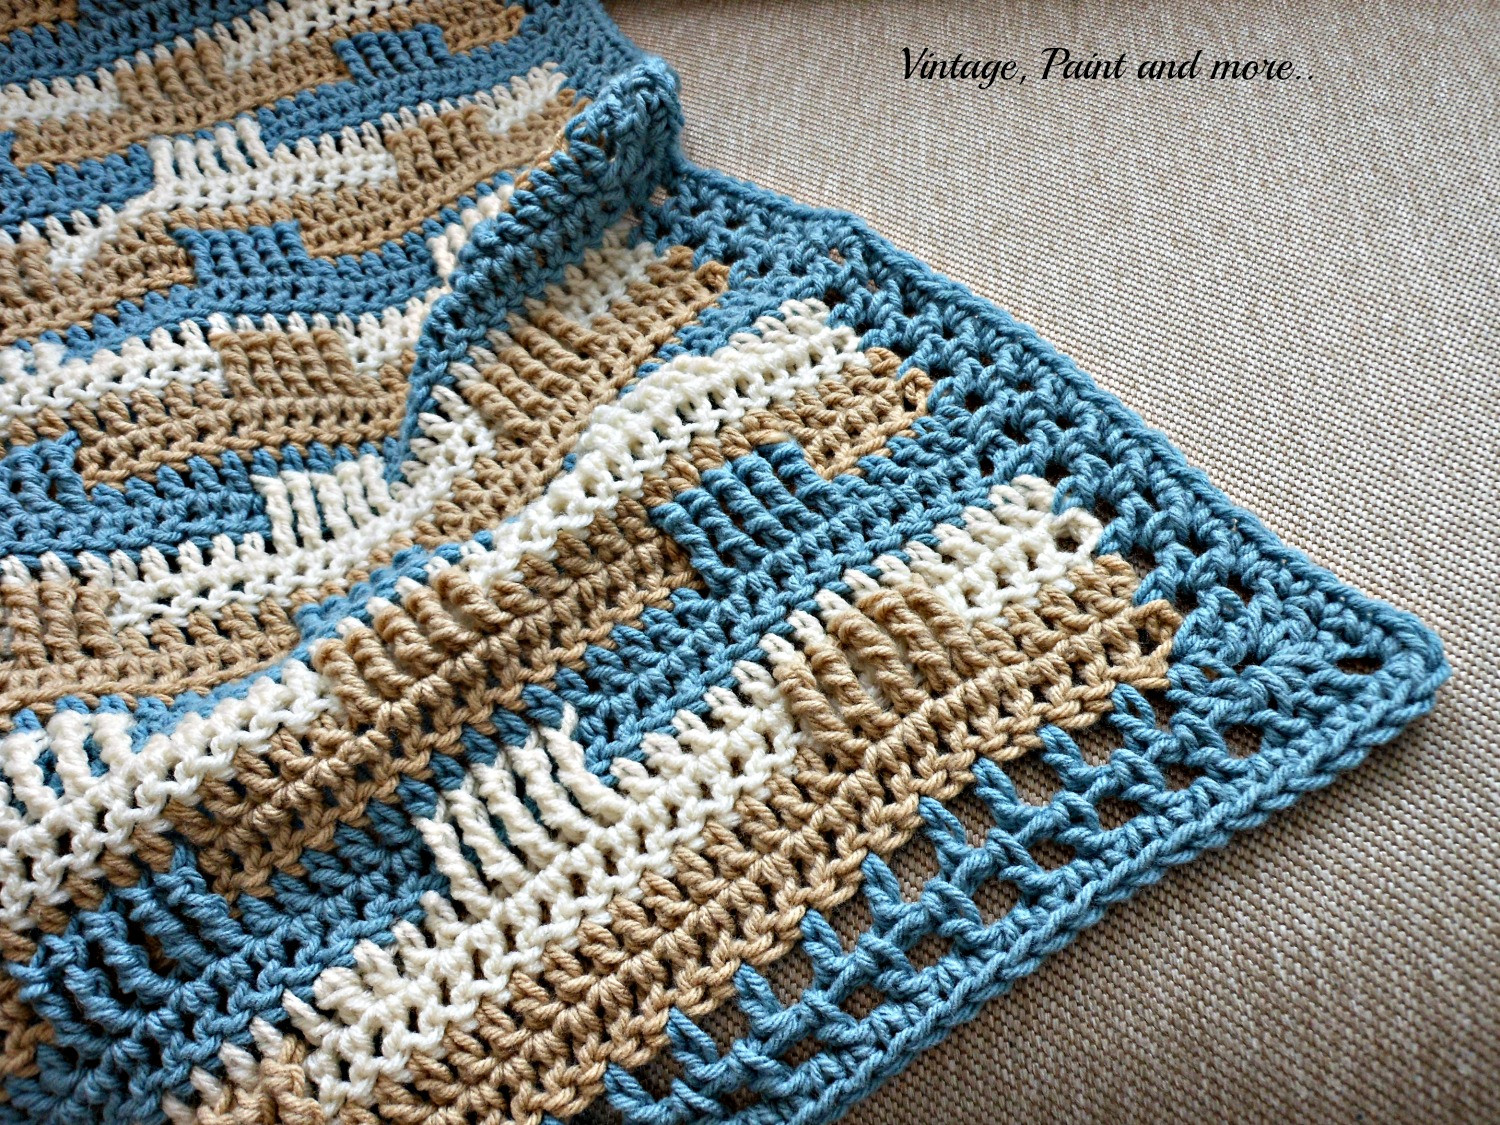 Crochet Throws Patterns Unique Crochet Afghan and Stenciled Pillow Of Wonderful 44 Images Crochet Throws Patterns